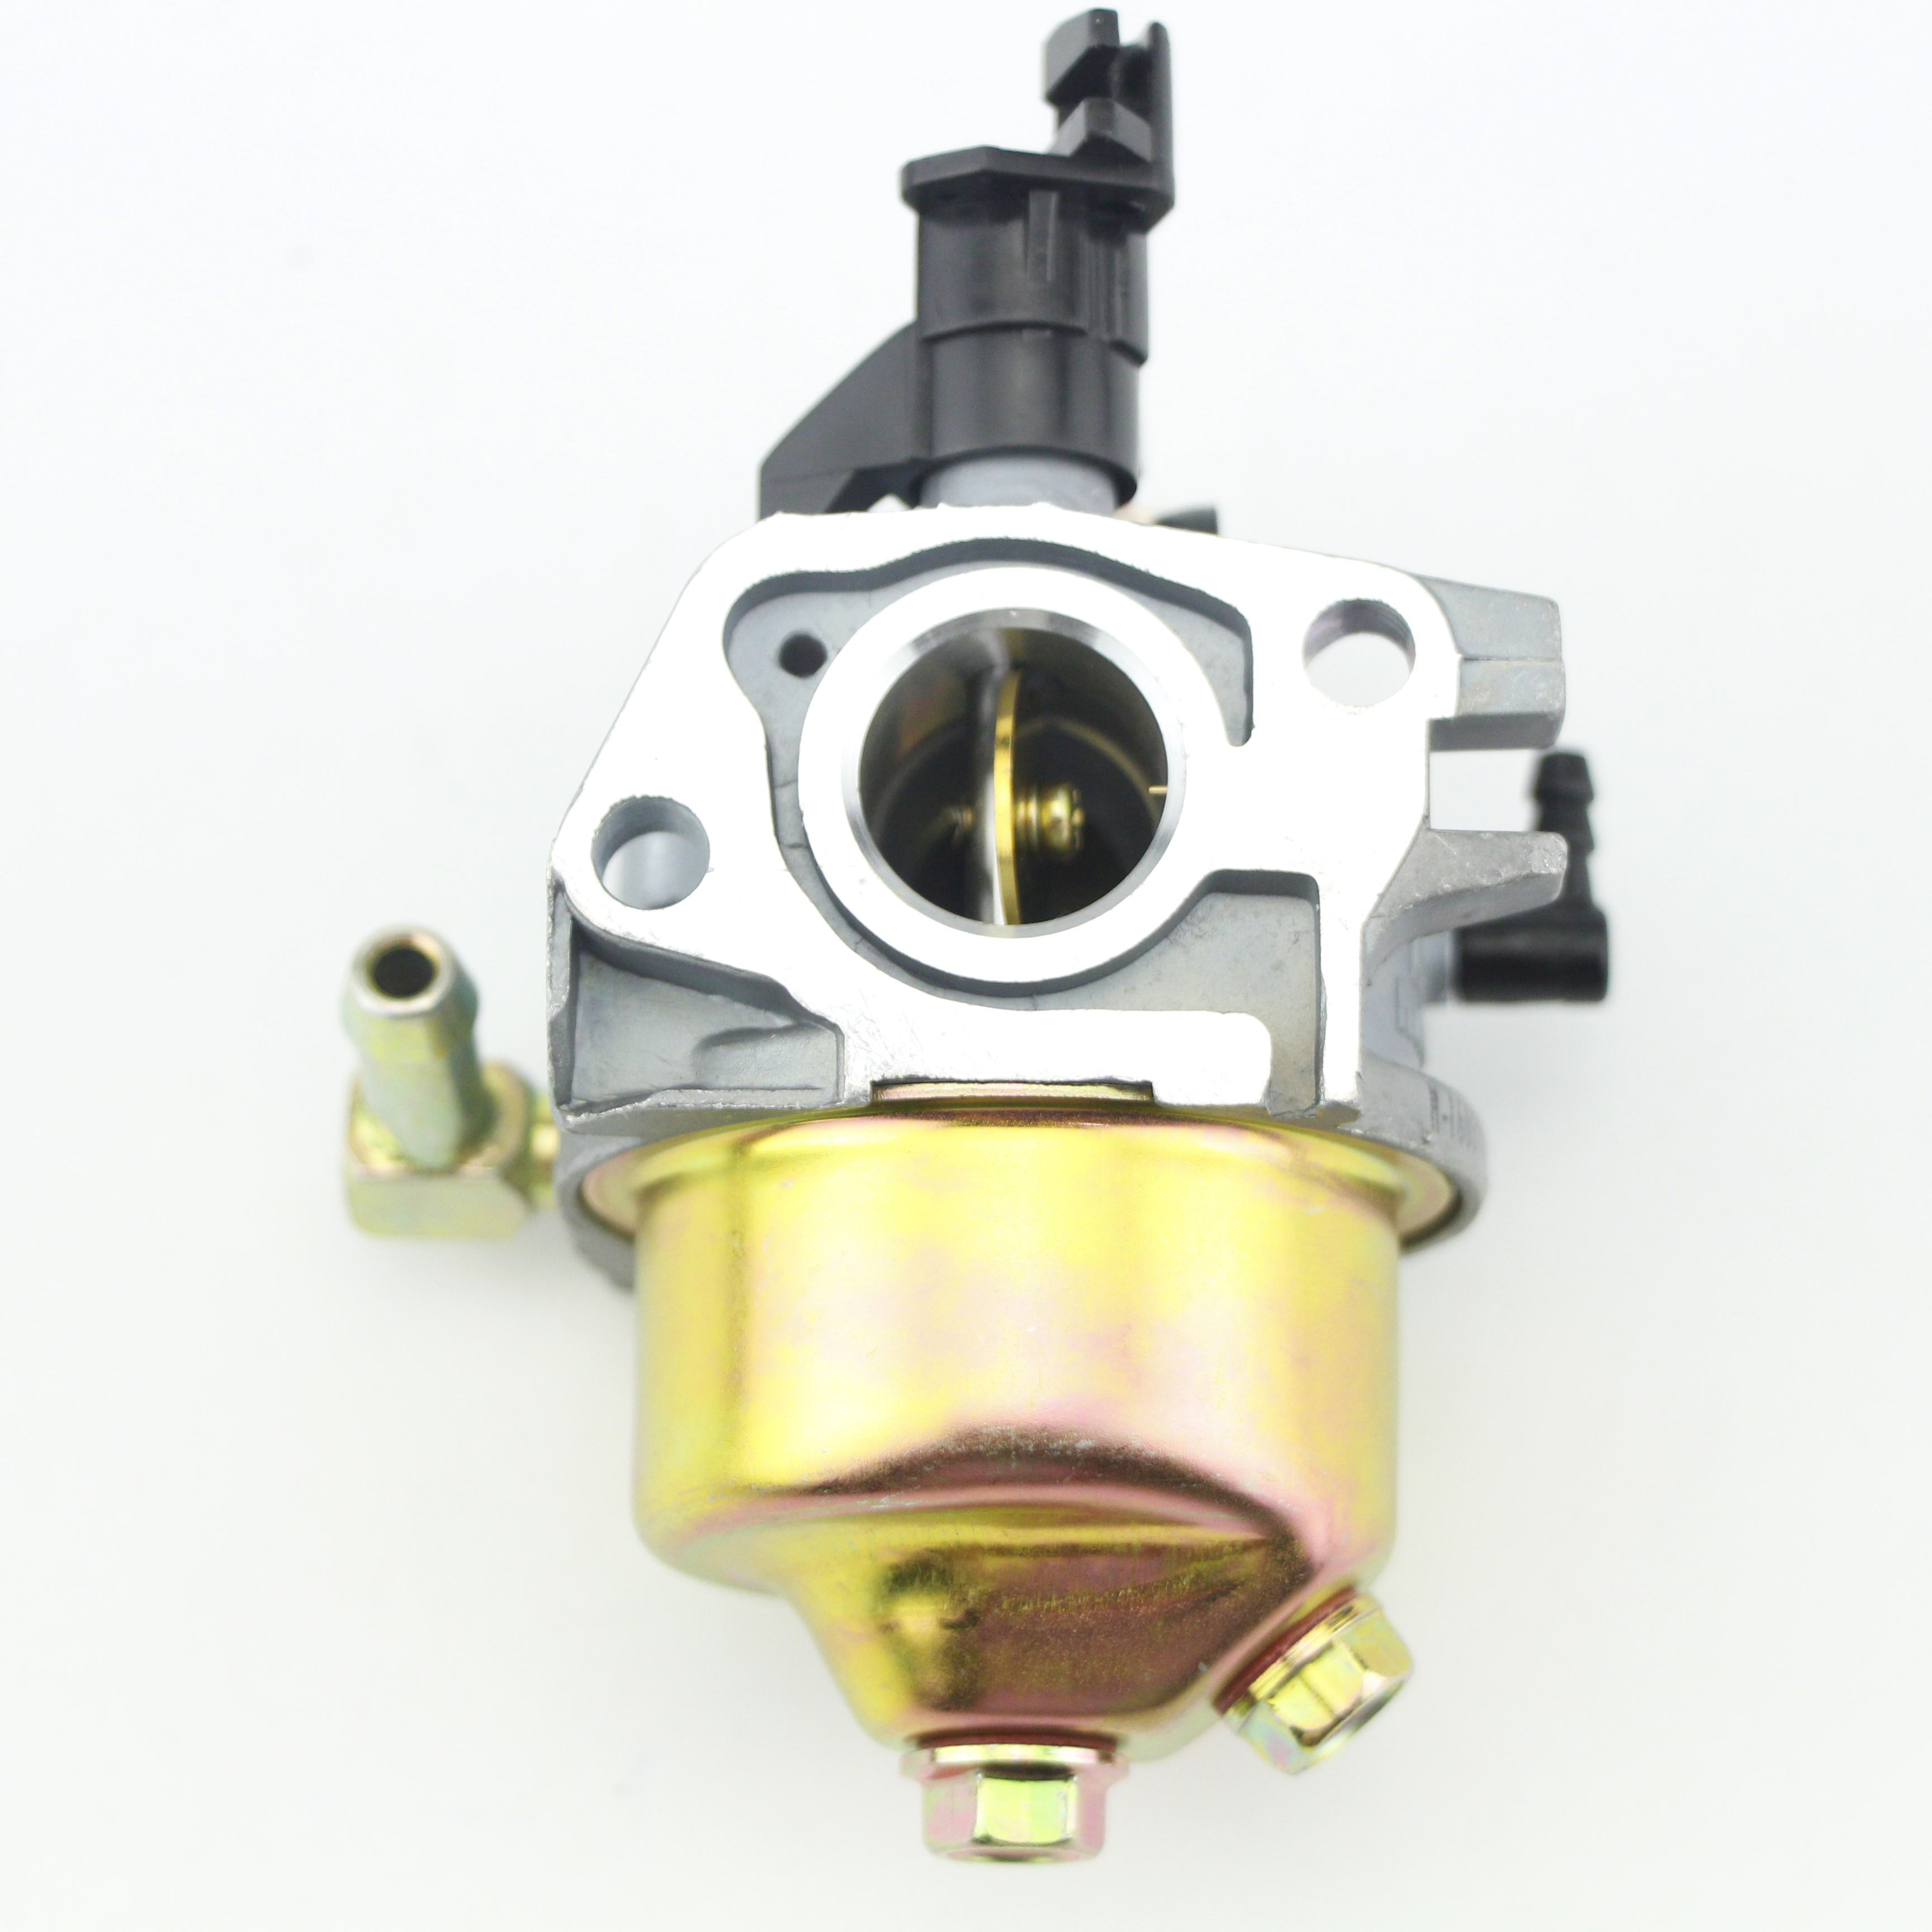 Carburetor MTD 165SA For Troy Bilt Cub Cadet Craftsman Engine Motors #  951-14026A 951-14027A, 951-10638A, 751-10310, 951-10310